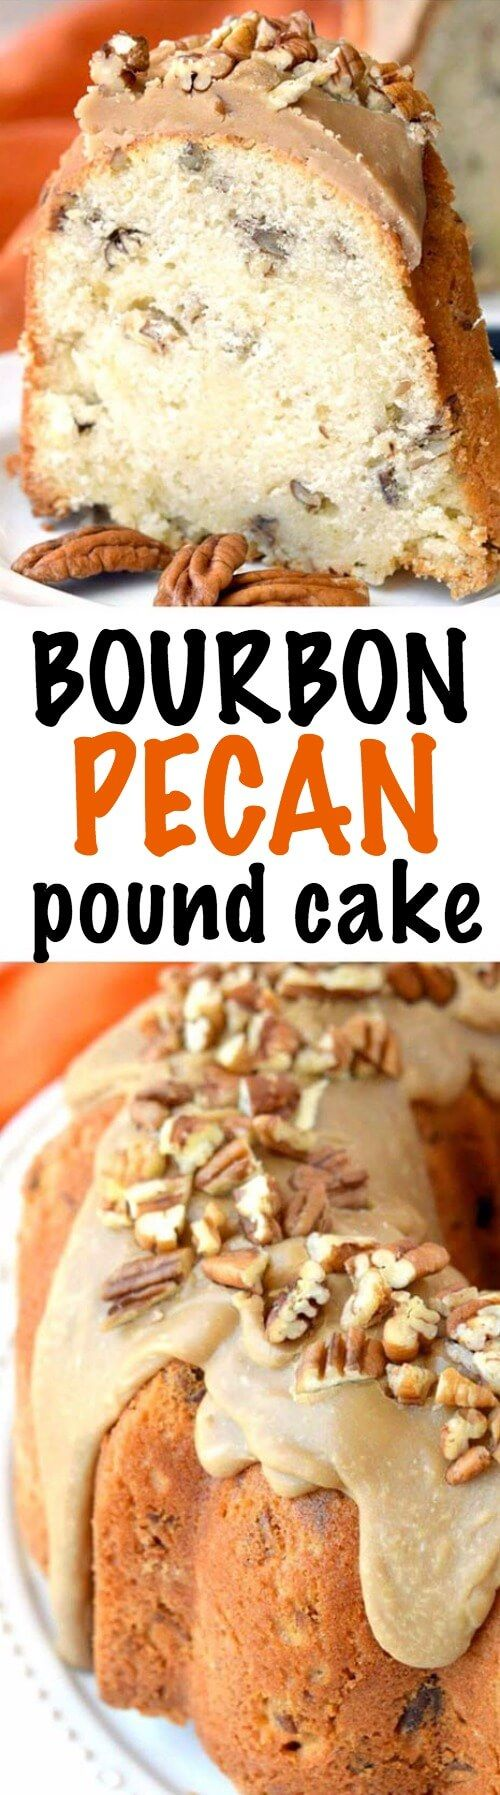 Glazed Bourbon Pecan Pound Cake-Tender, Rich Pound Cake loaded with Pecans and a…